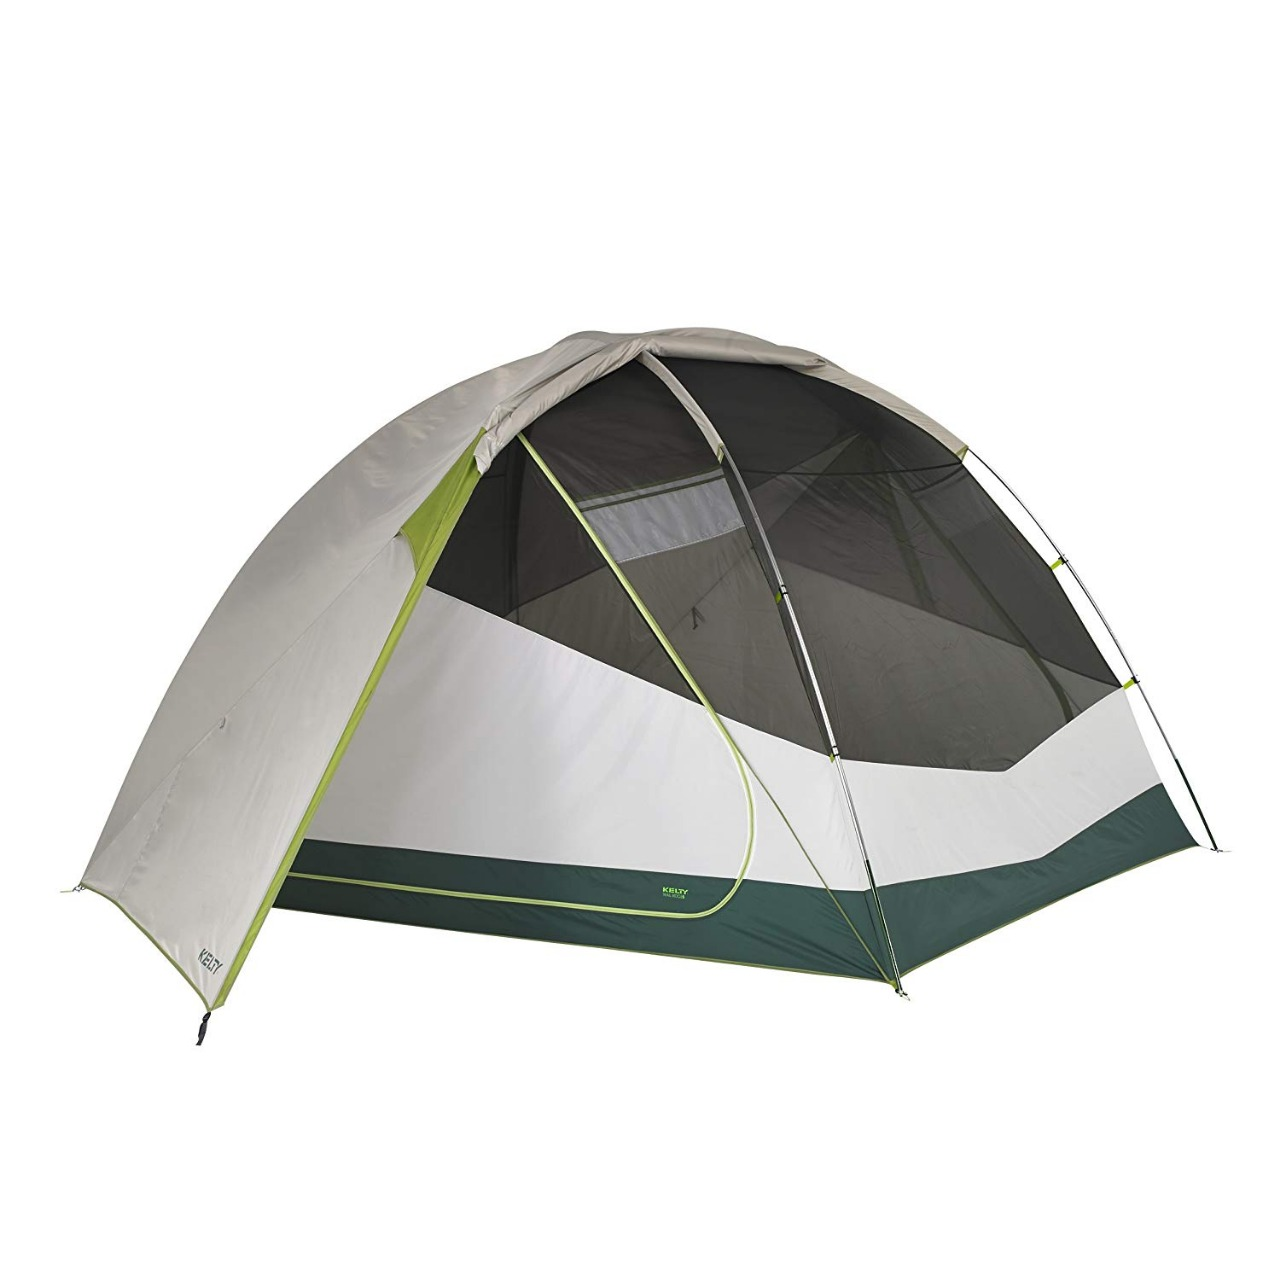 Top 10 Best Waterproof Tent For Camping 2020 Reviews 10